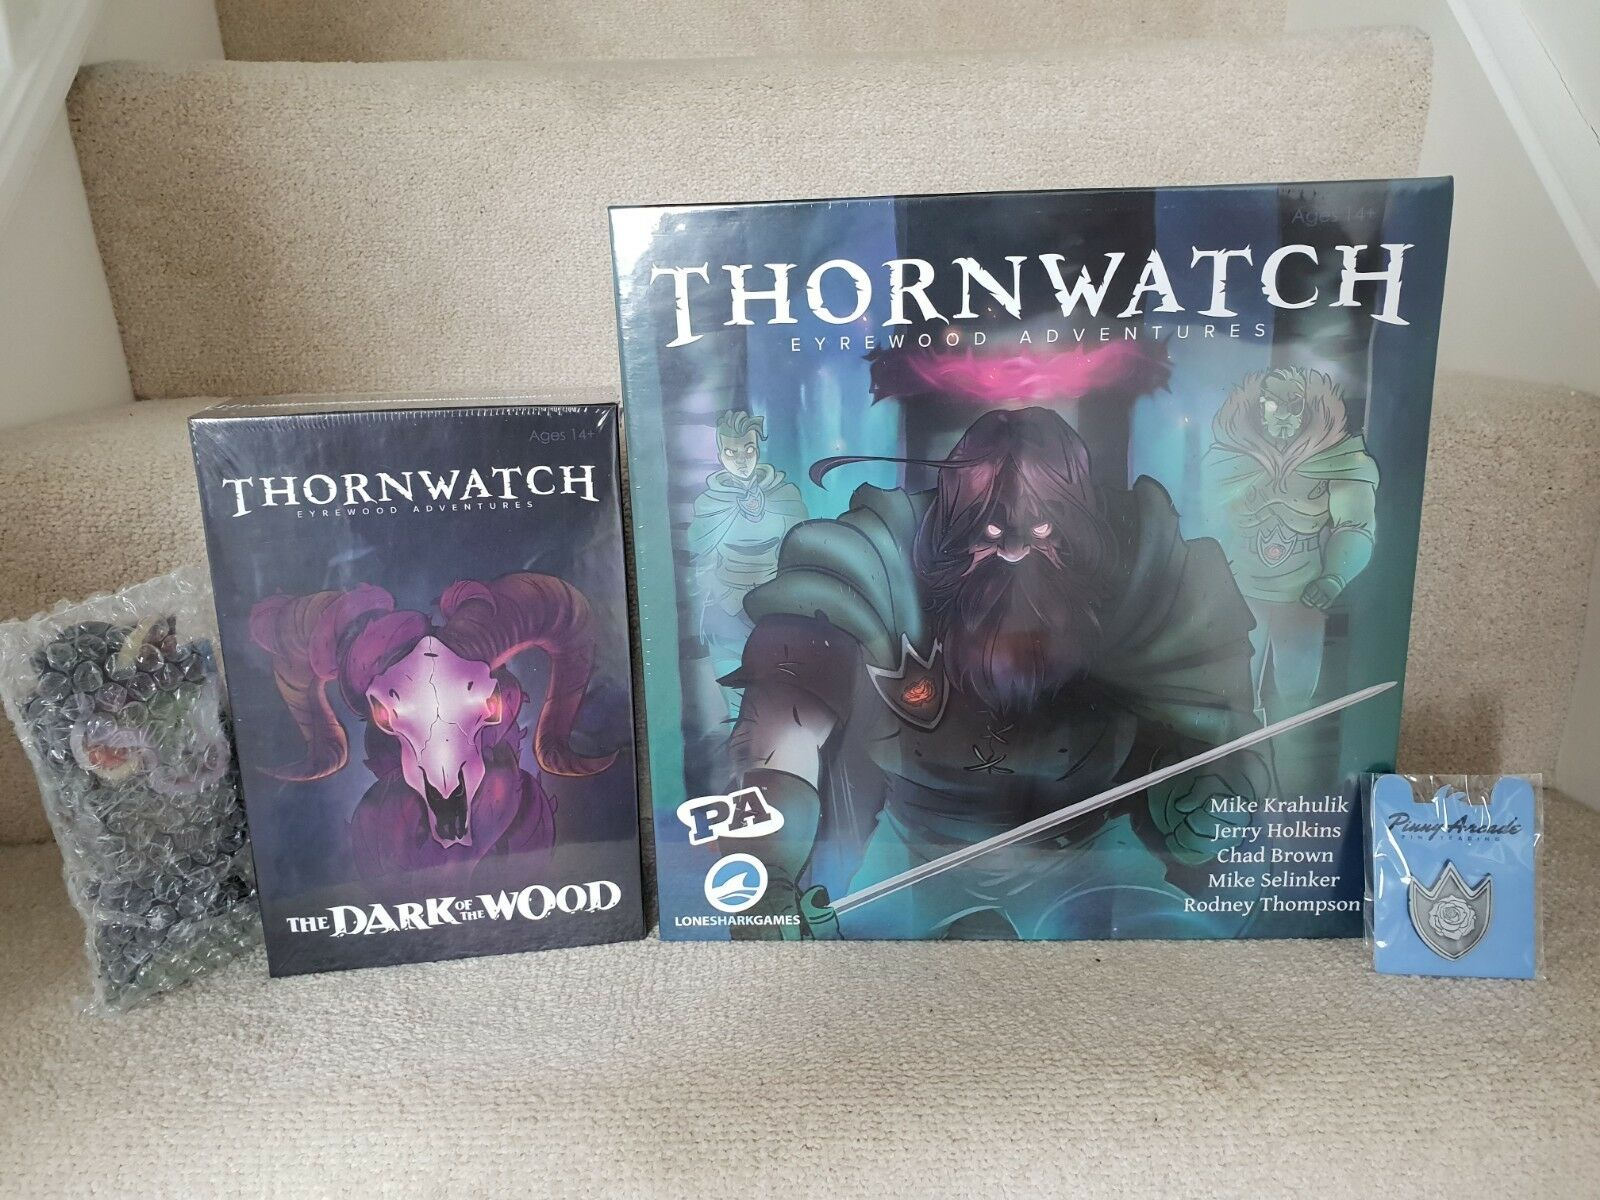 Thornwatch Game + Dark of the Wood + Pinny Arcade Collectible Pin + Upgrades NEW